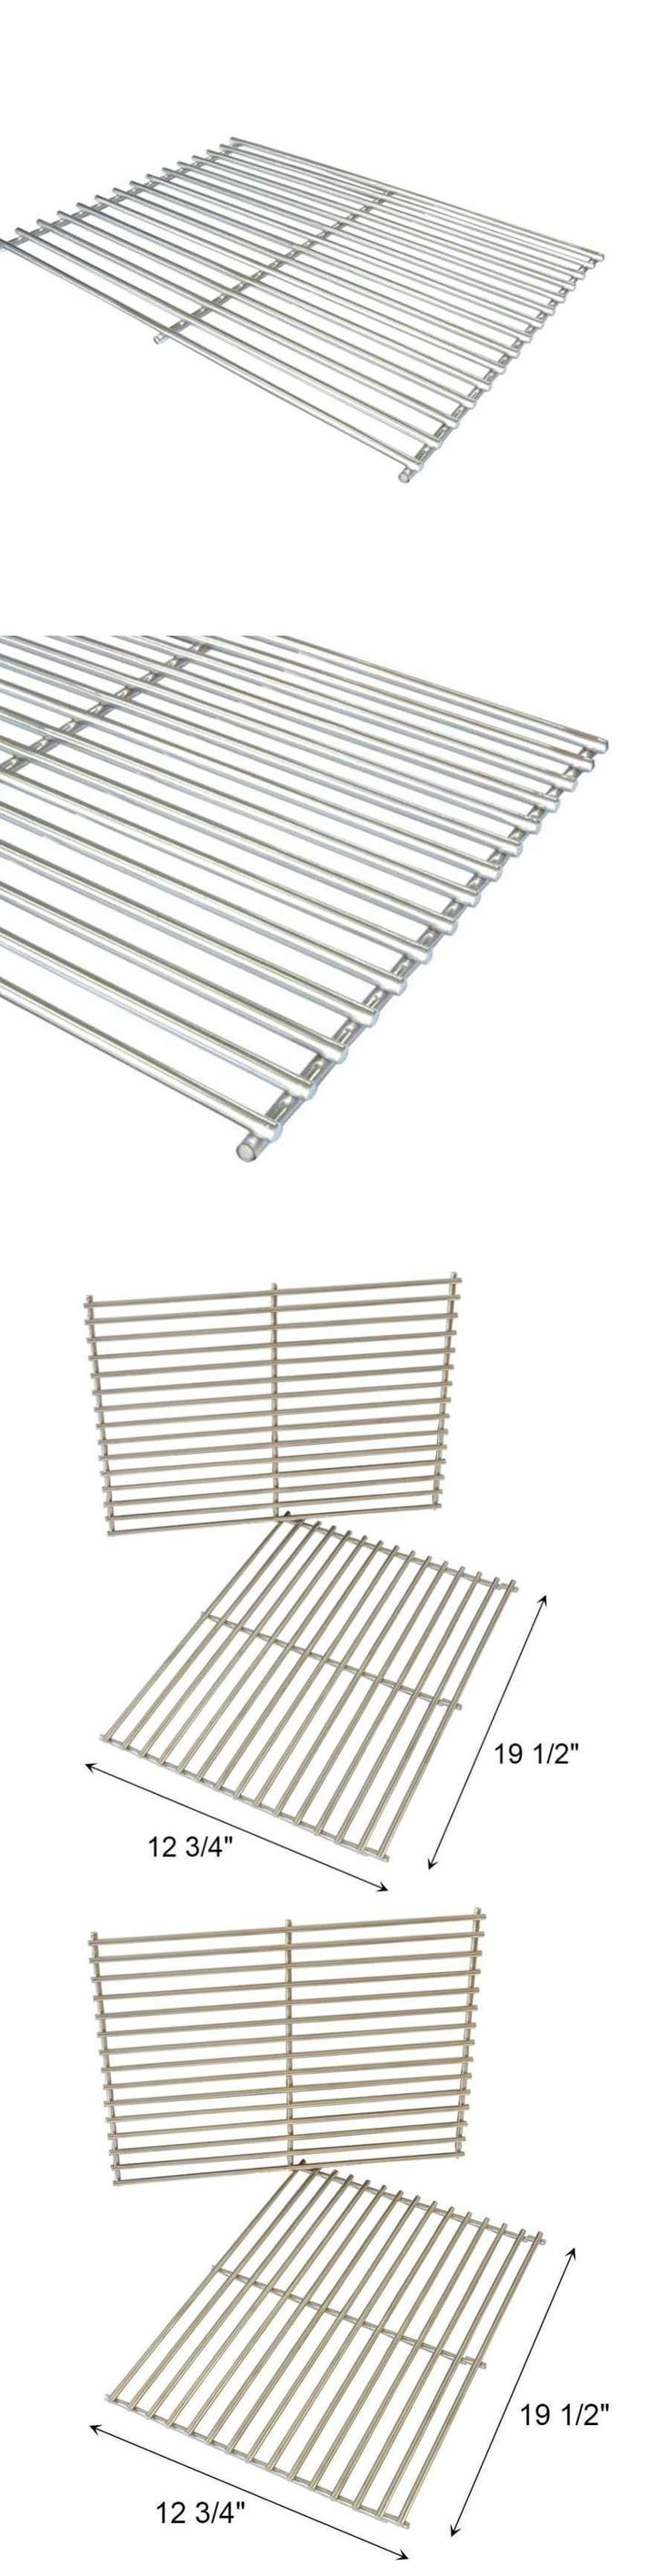 BBQ and Grill Replacement Parts 177018: Weber 7528 Set Of 2 Stainless Steel Cooking Grates For Spirit And Genesis Models -> BUY IT NOW ONLY: $61.07 on eBay!